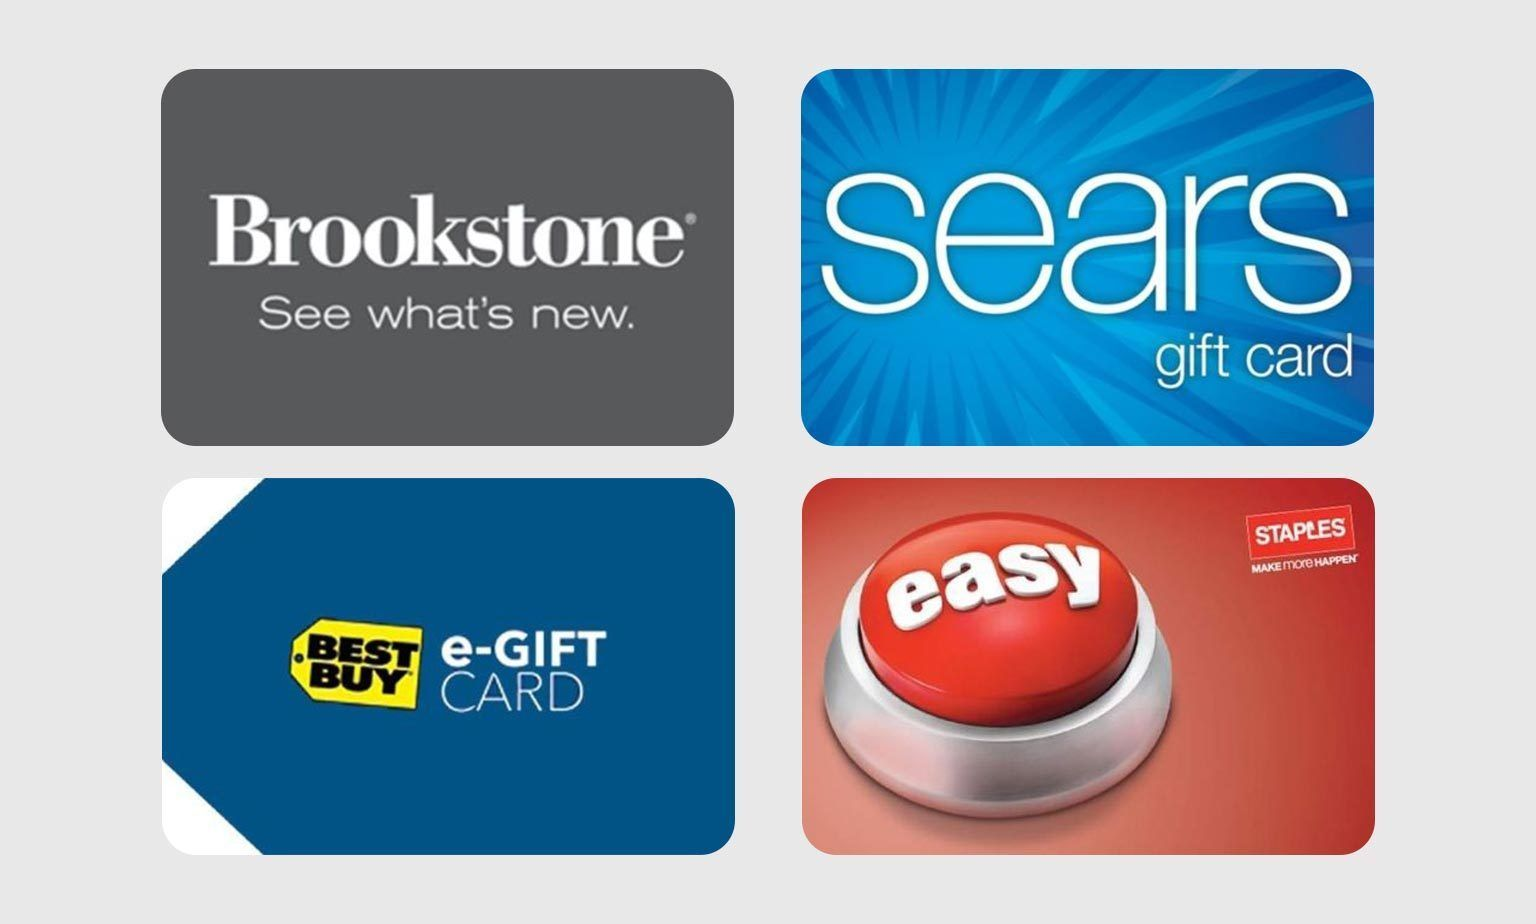 Pro Bono Gift Cards Gift cards for free free gift cards Pinterest